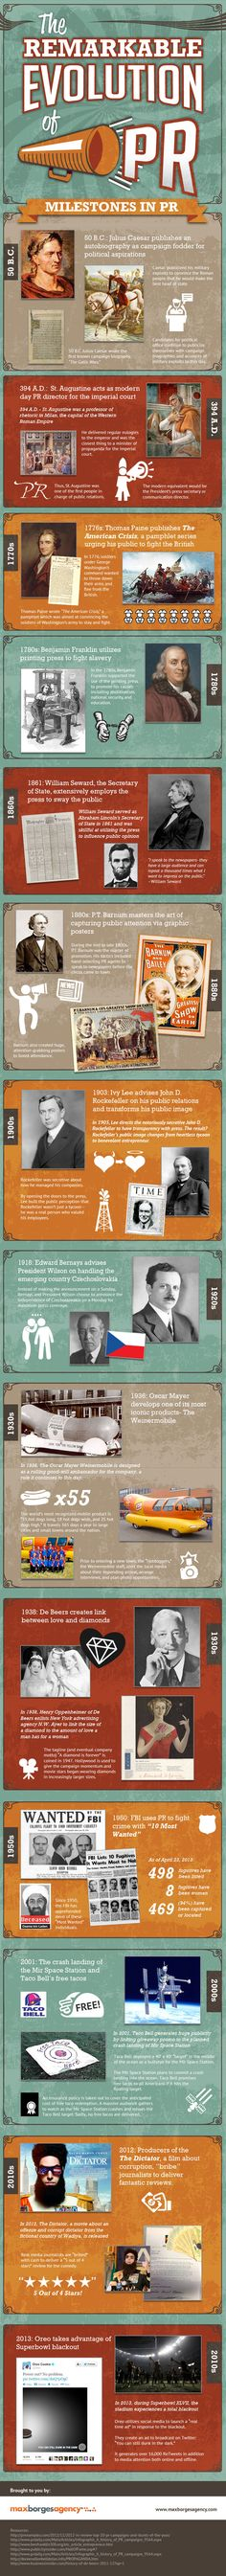 Although public relations wasn't officially a profession until relatively recently, the practice has been around for thousands of years. This infographic on traces the history of PR and its evolution. Content Marketing, Internet Marketing, Online Marketing, Digital Marketing, Internet Entrepreneur, Guerrilla Marketing, Event Marketing, Mobile Marketing, Marketing Plan